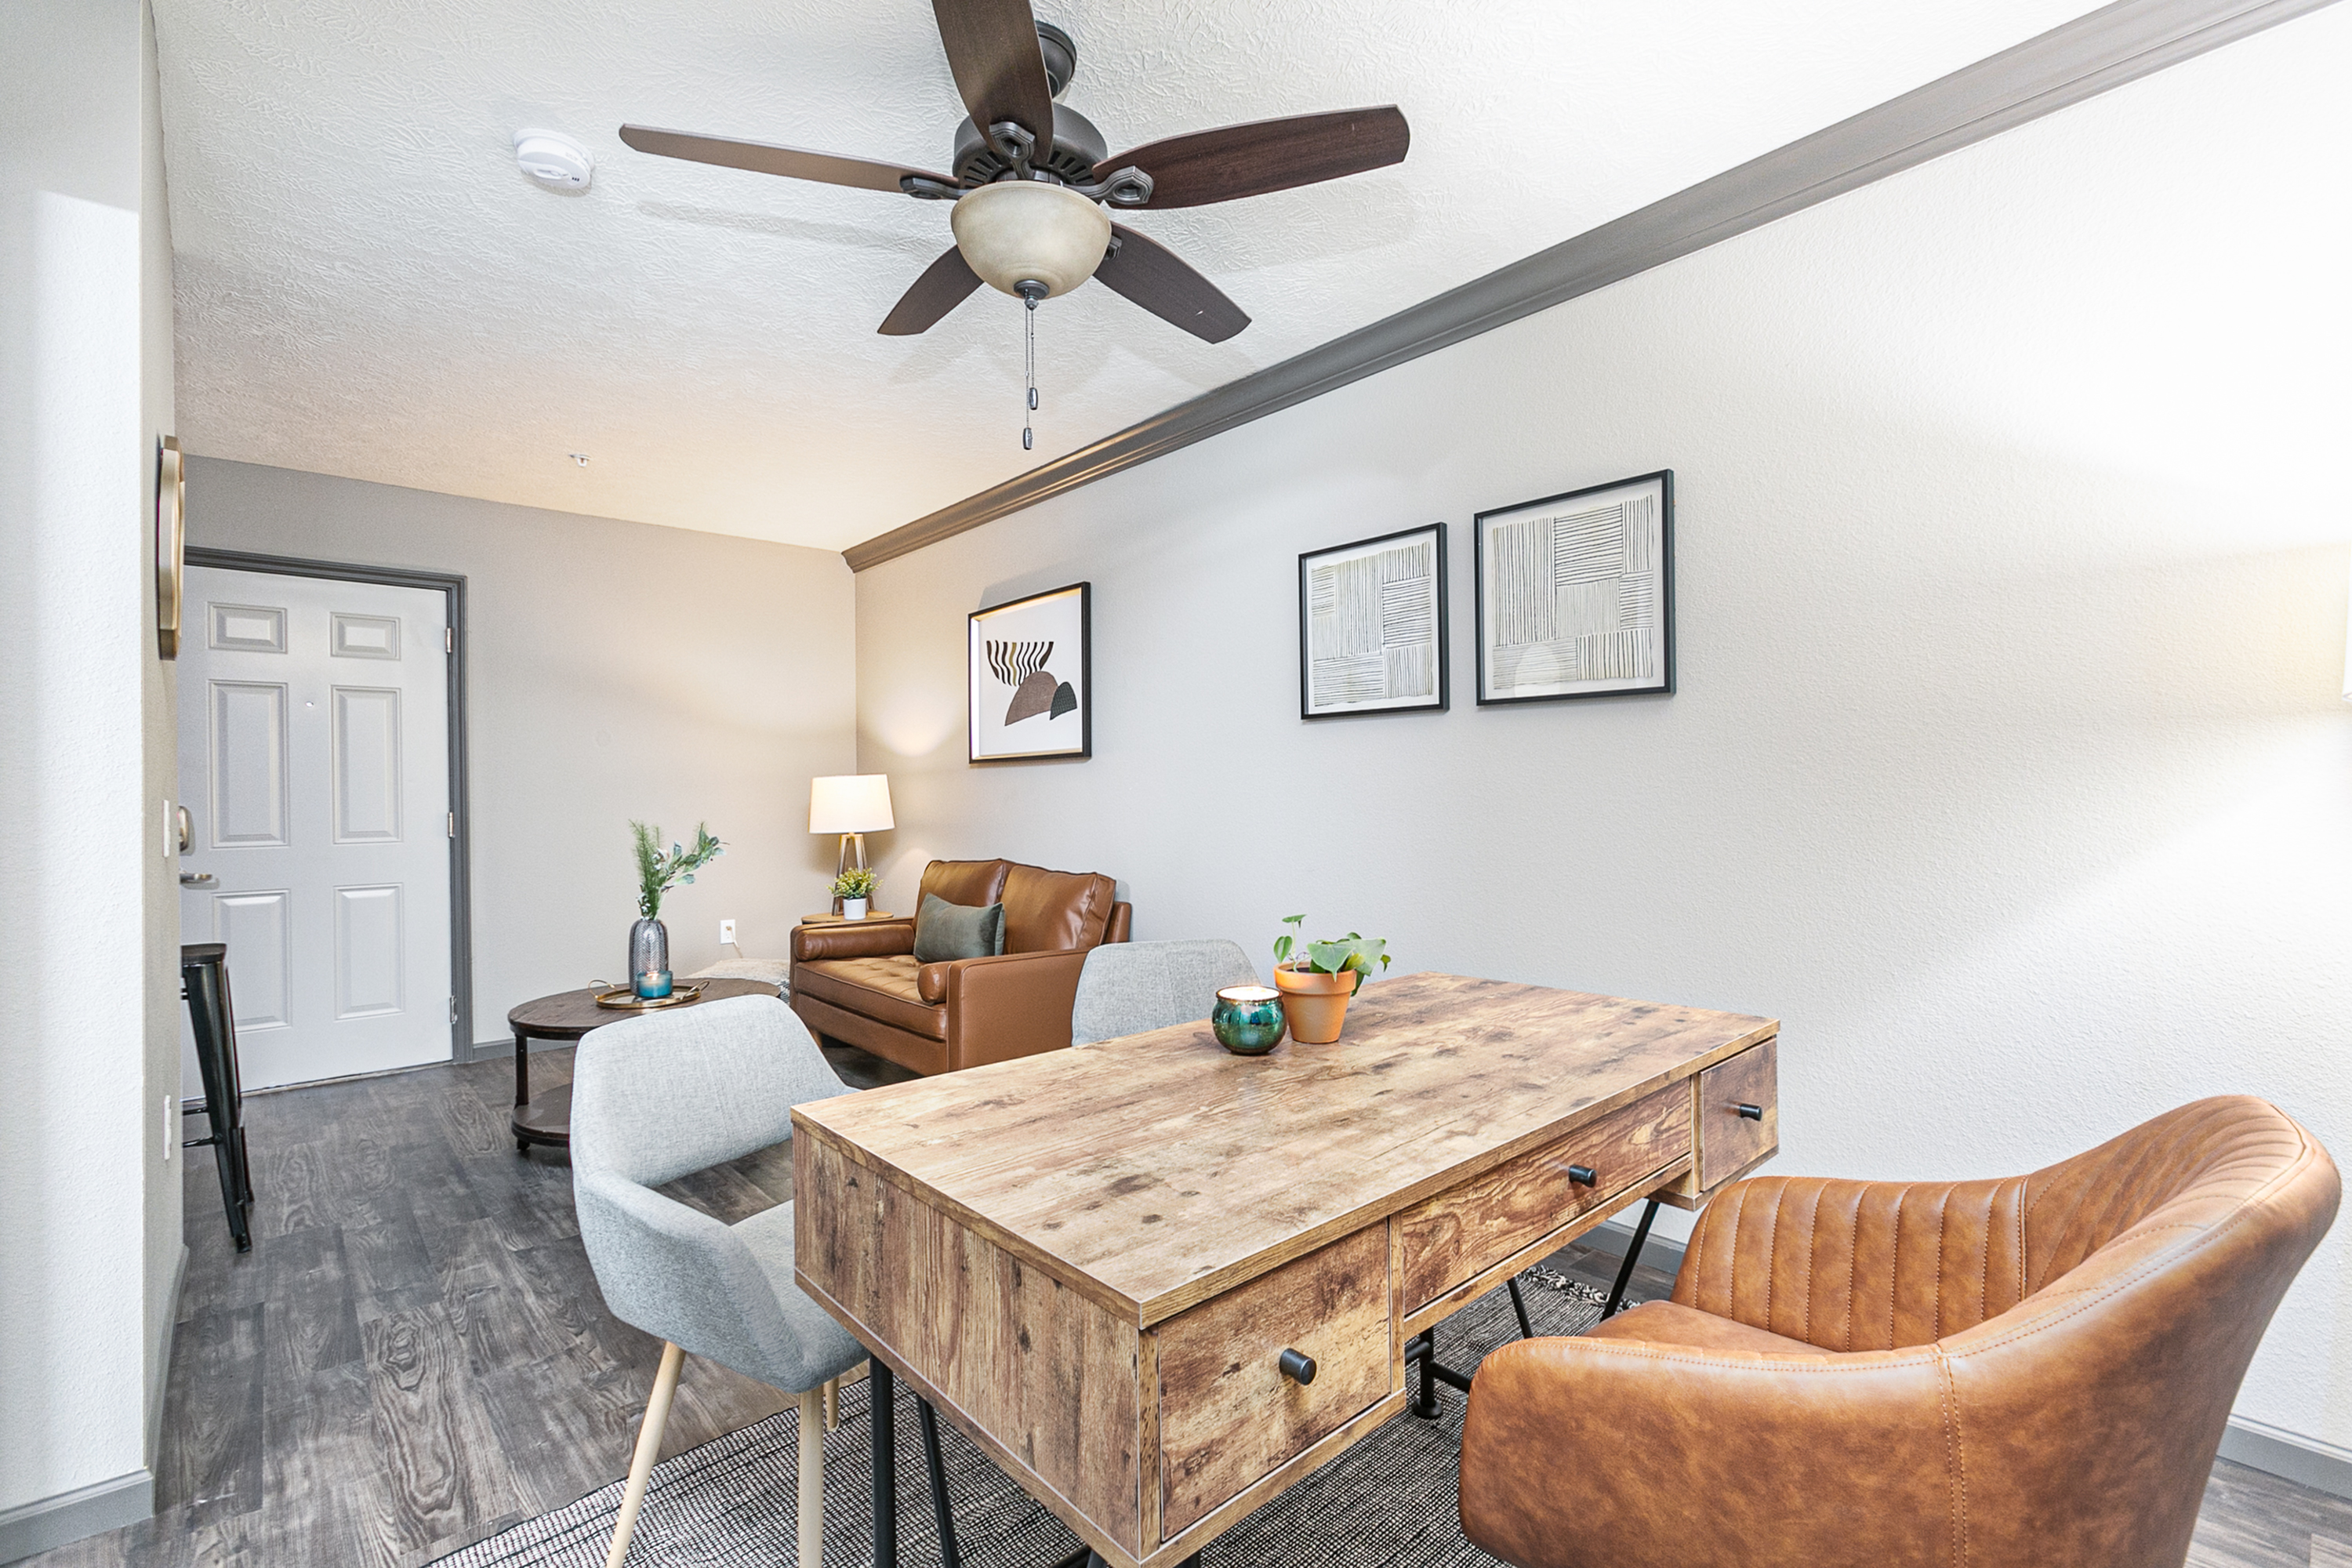 studio apartment with a desk and a living room couch and coffee table